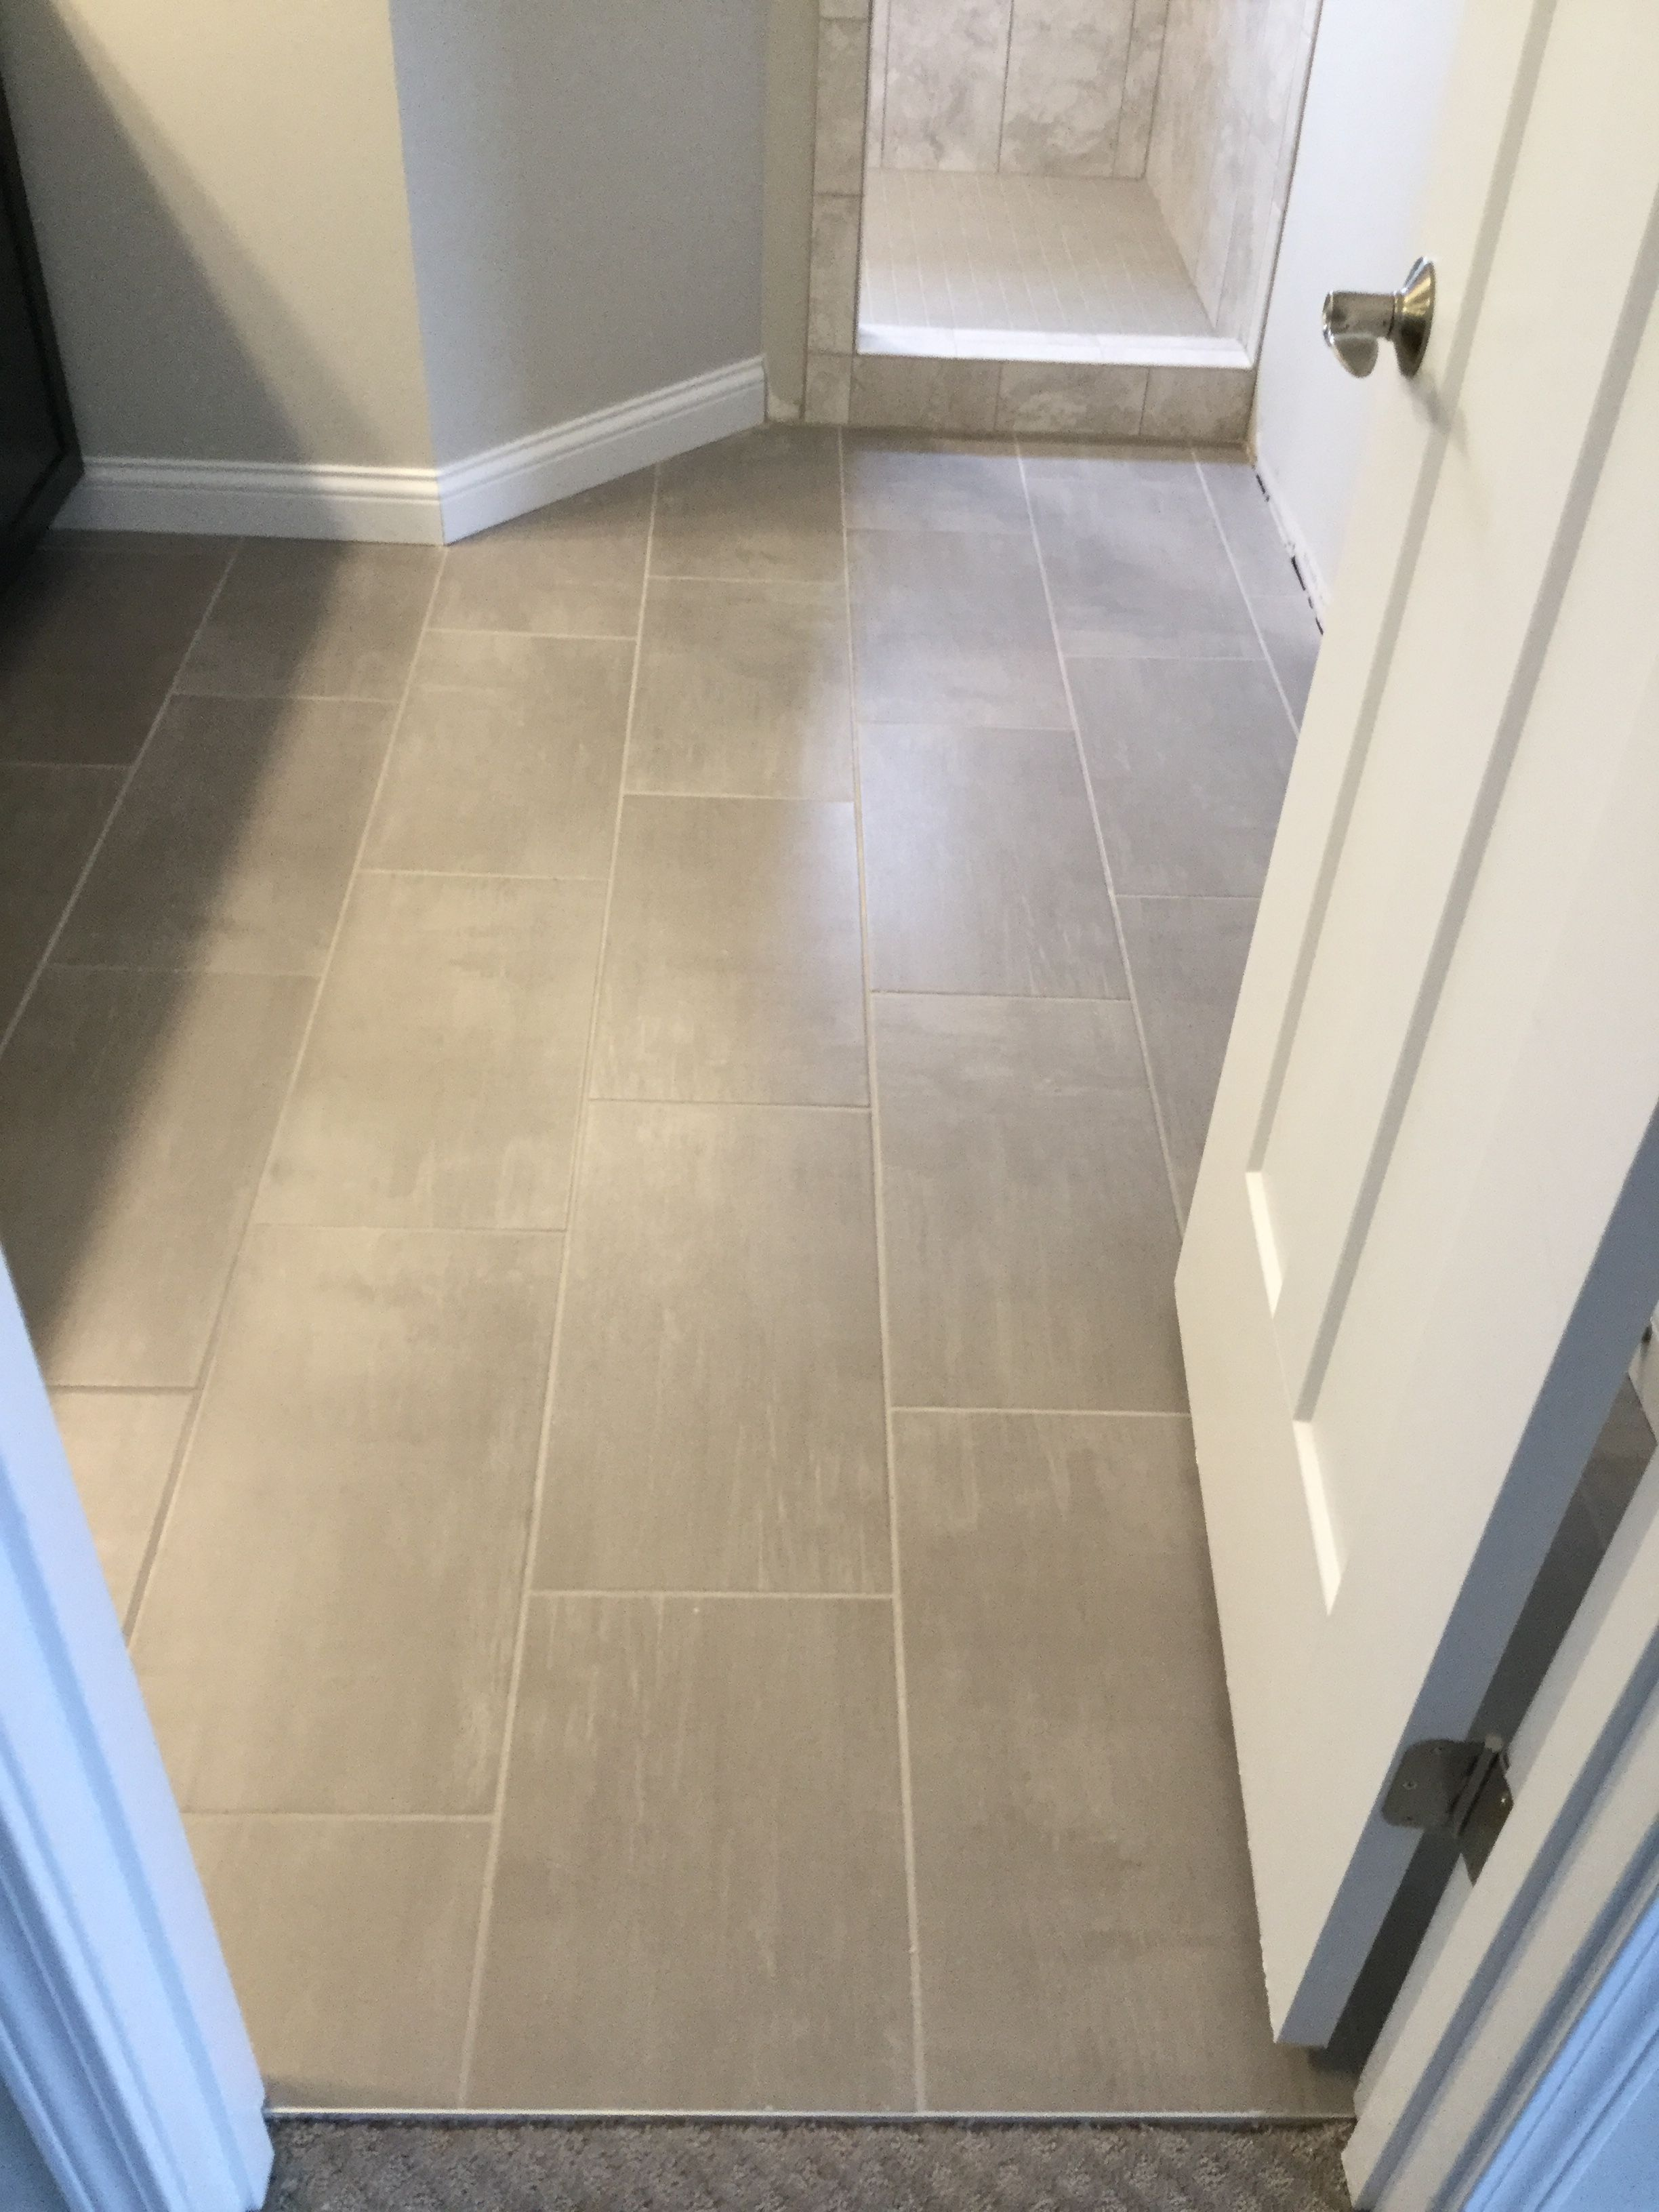 Skybridge 12x24 Gray Floor Tile Grey Flooring Grey Floor Tiles Kitchen Floor Tile Patterns